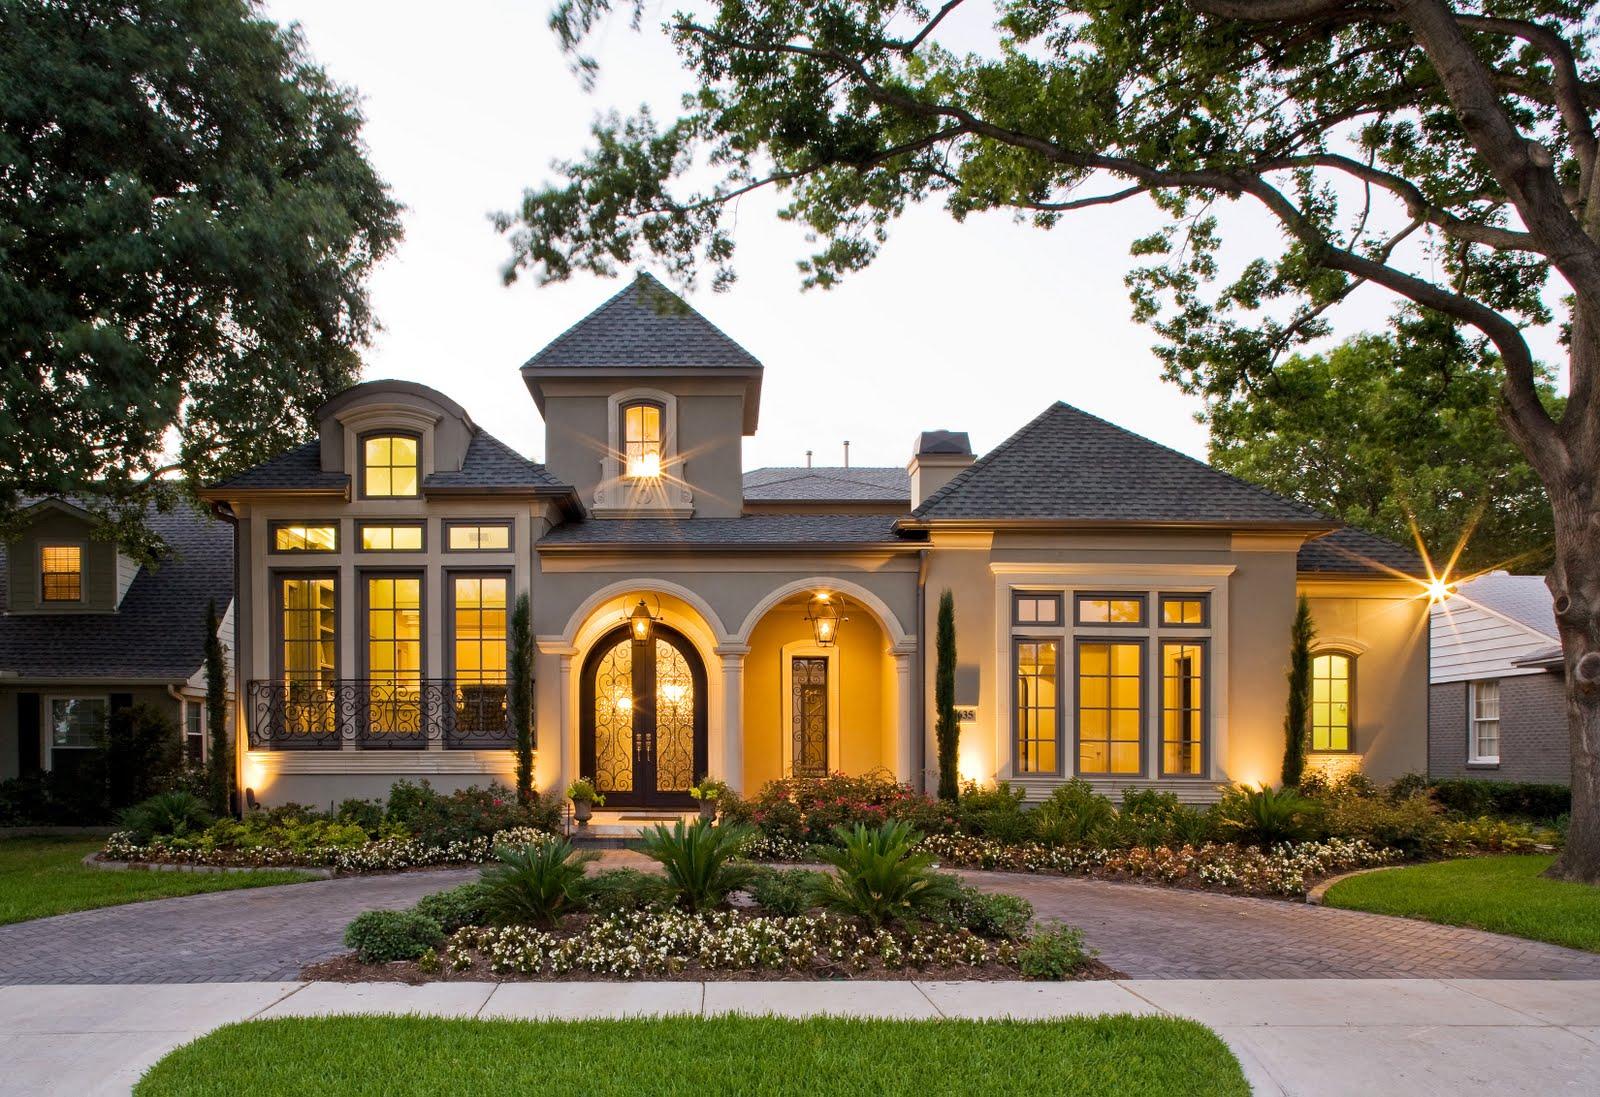 Upgrade Your House Exterior With These Tricks - HomesFeed on Beautiful Home Decor  id=64367